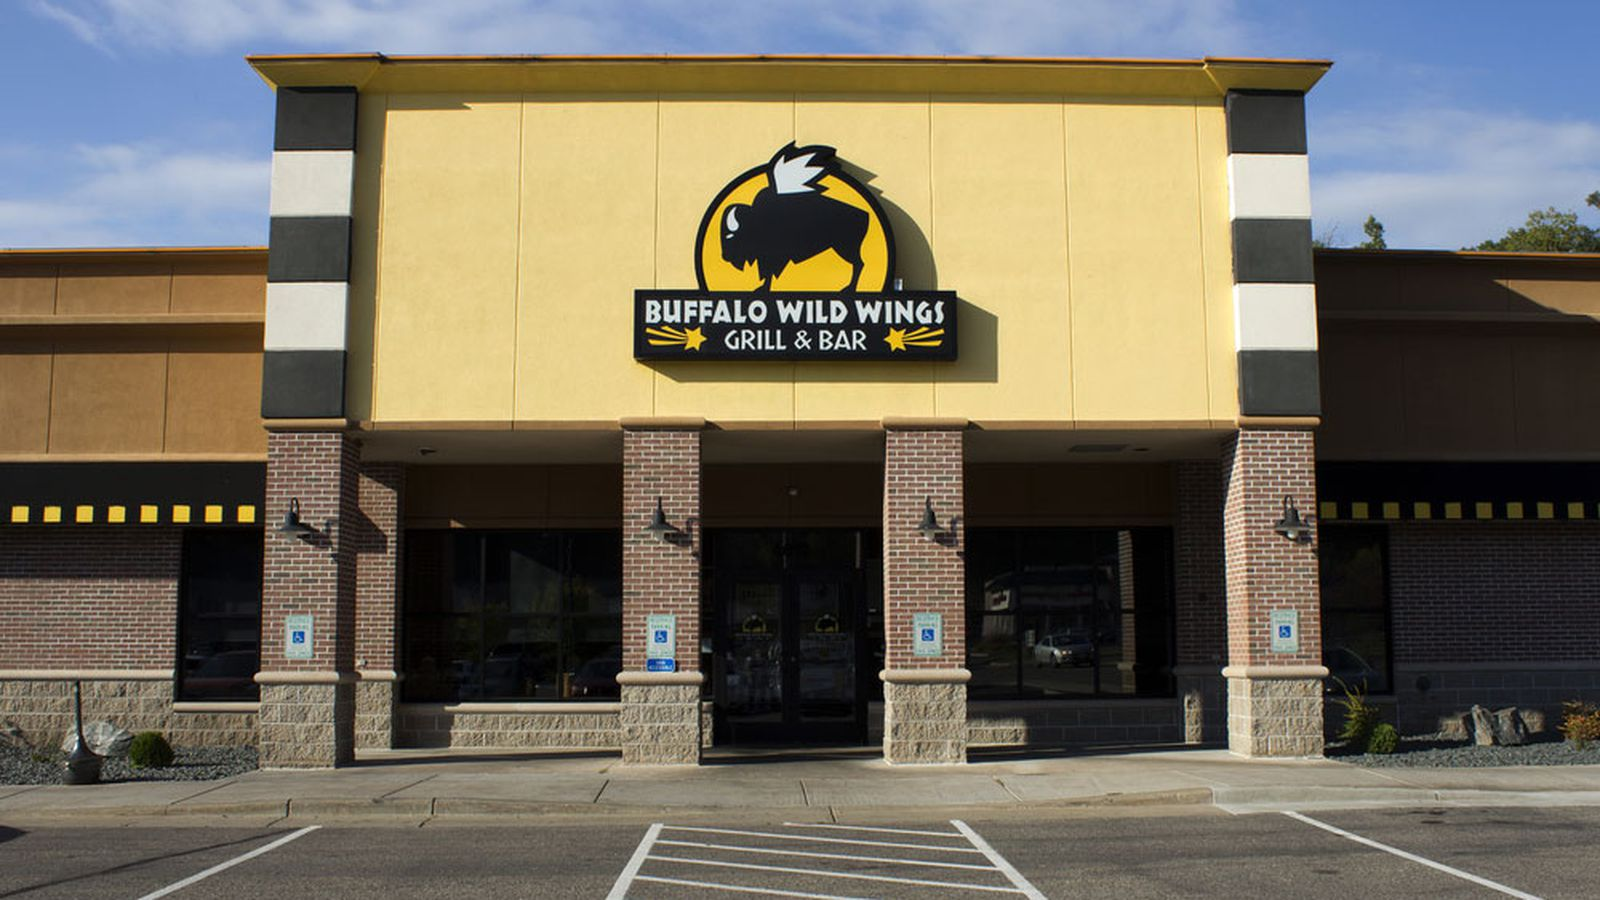 Buffalo Wild Wings Austin TX locations, hours, phone number, map and driving directions.